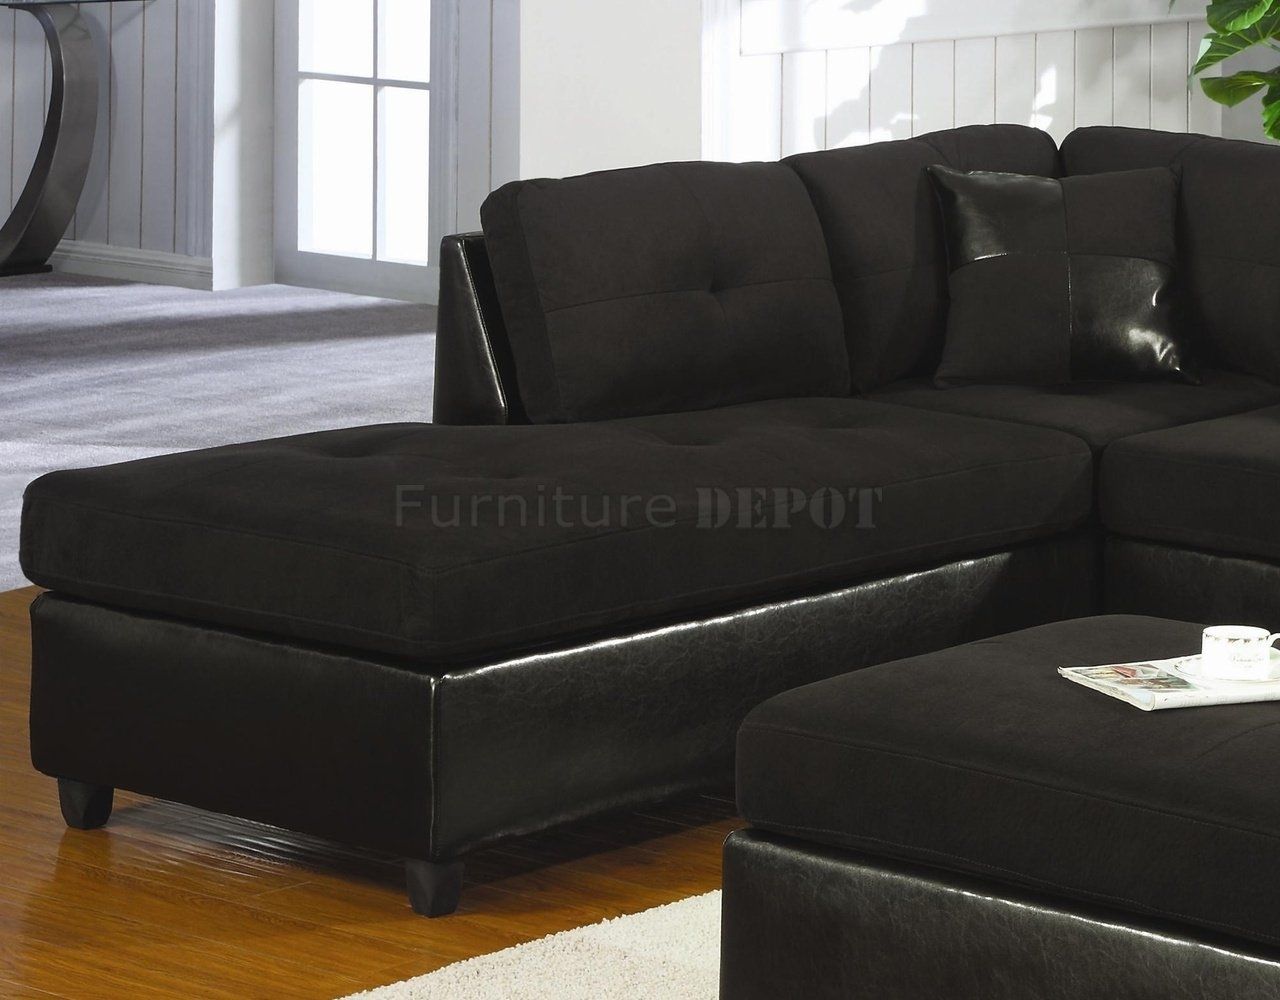 Black Microsuede Couch | Microfiber & Faux Leather Contemporary Inside Black Sectional Sofas (Image 5 of 10)